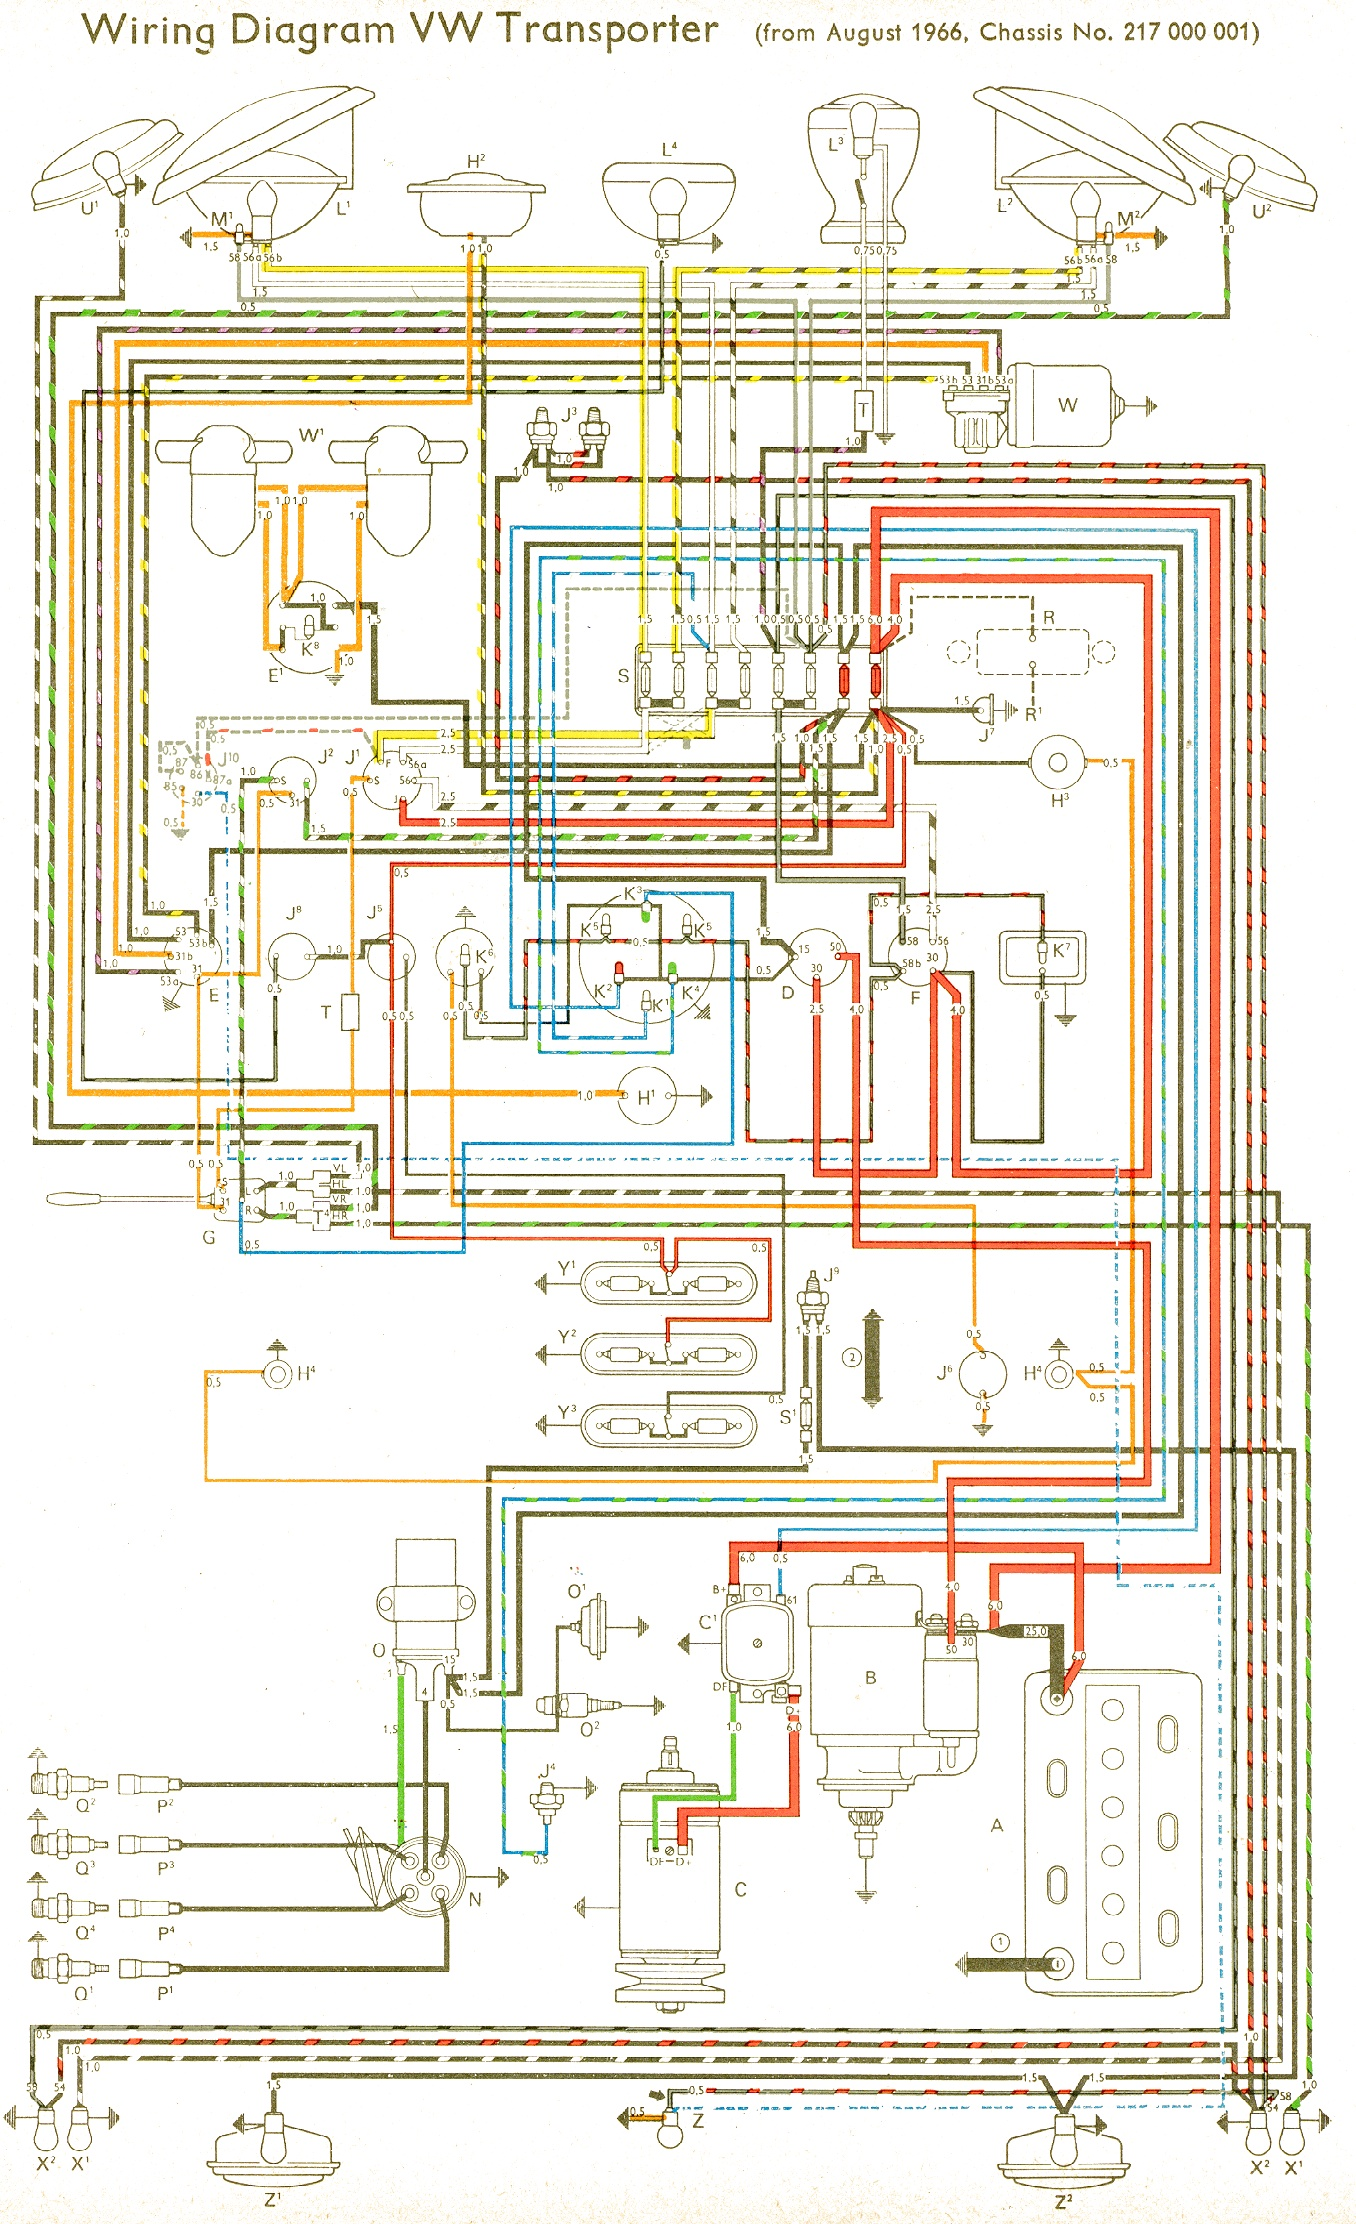 bus 66 glaval bus wiring diagram 2000 thomas bus \u2022 wiring diagrams j mci bus wiring schematic at crackthecode.co